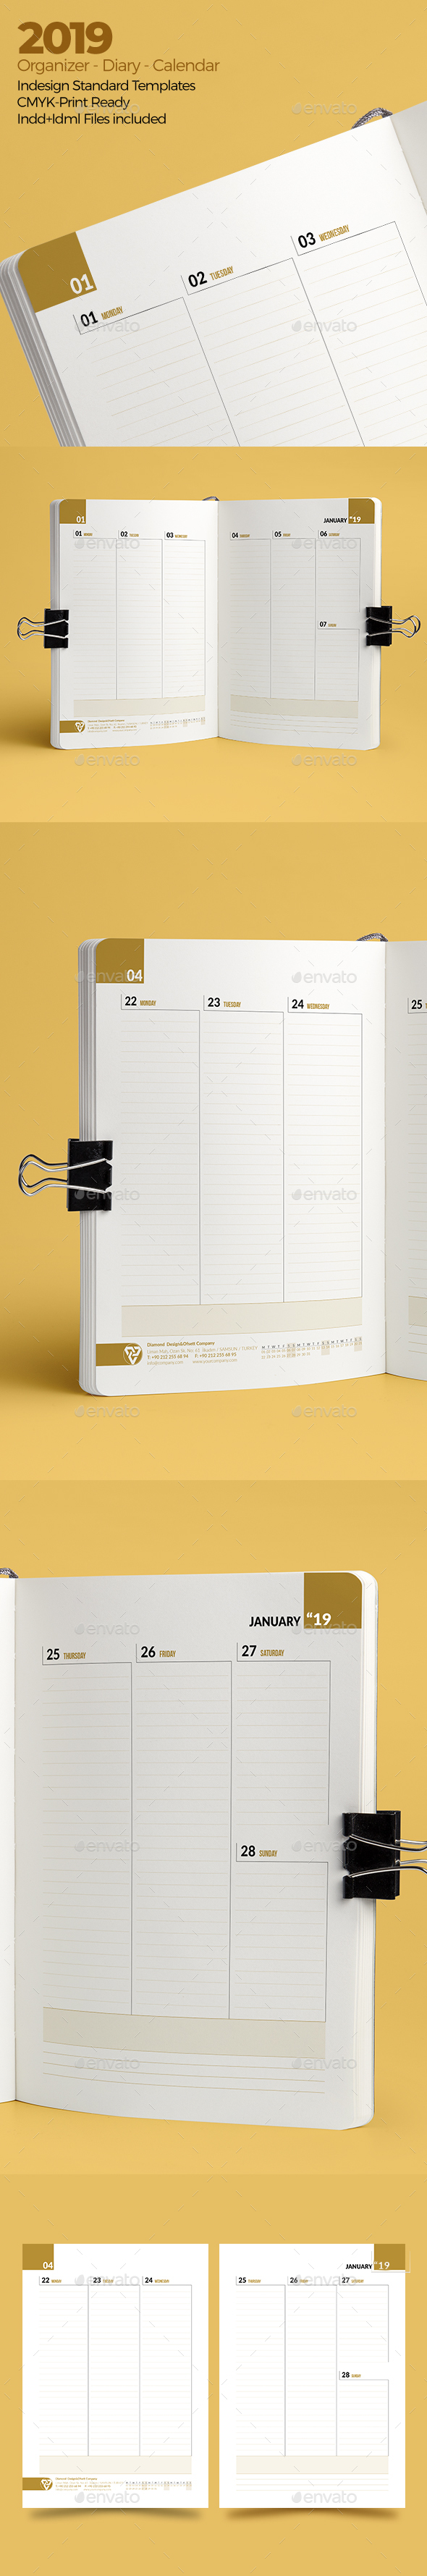 Weekly Diary Planner 2019 v3 - Calendars Stationery